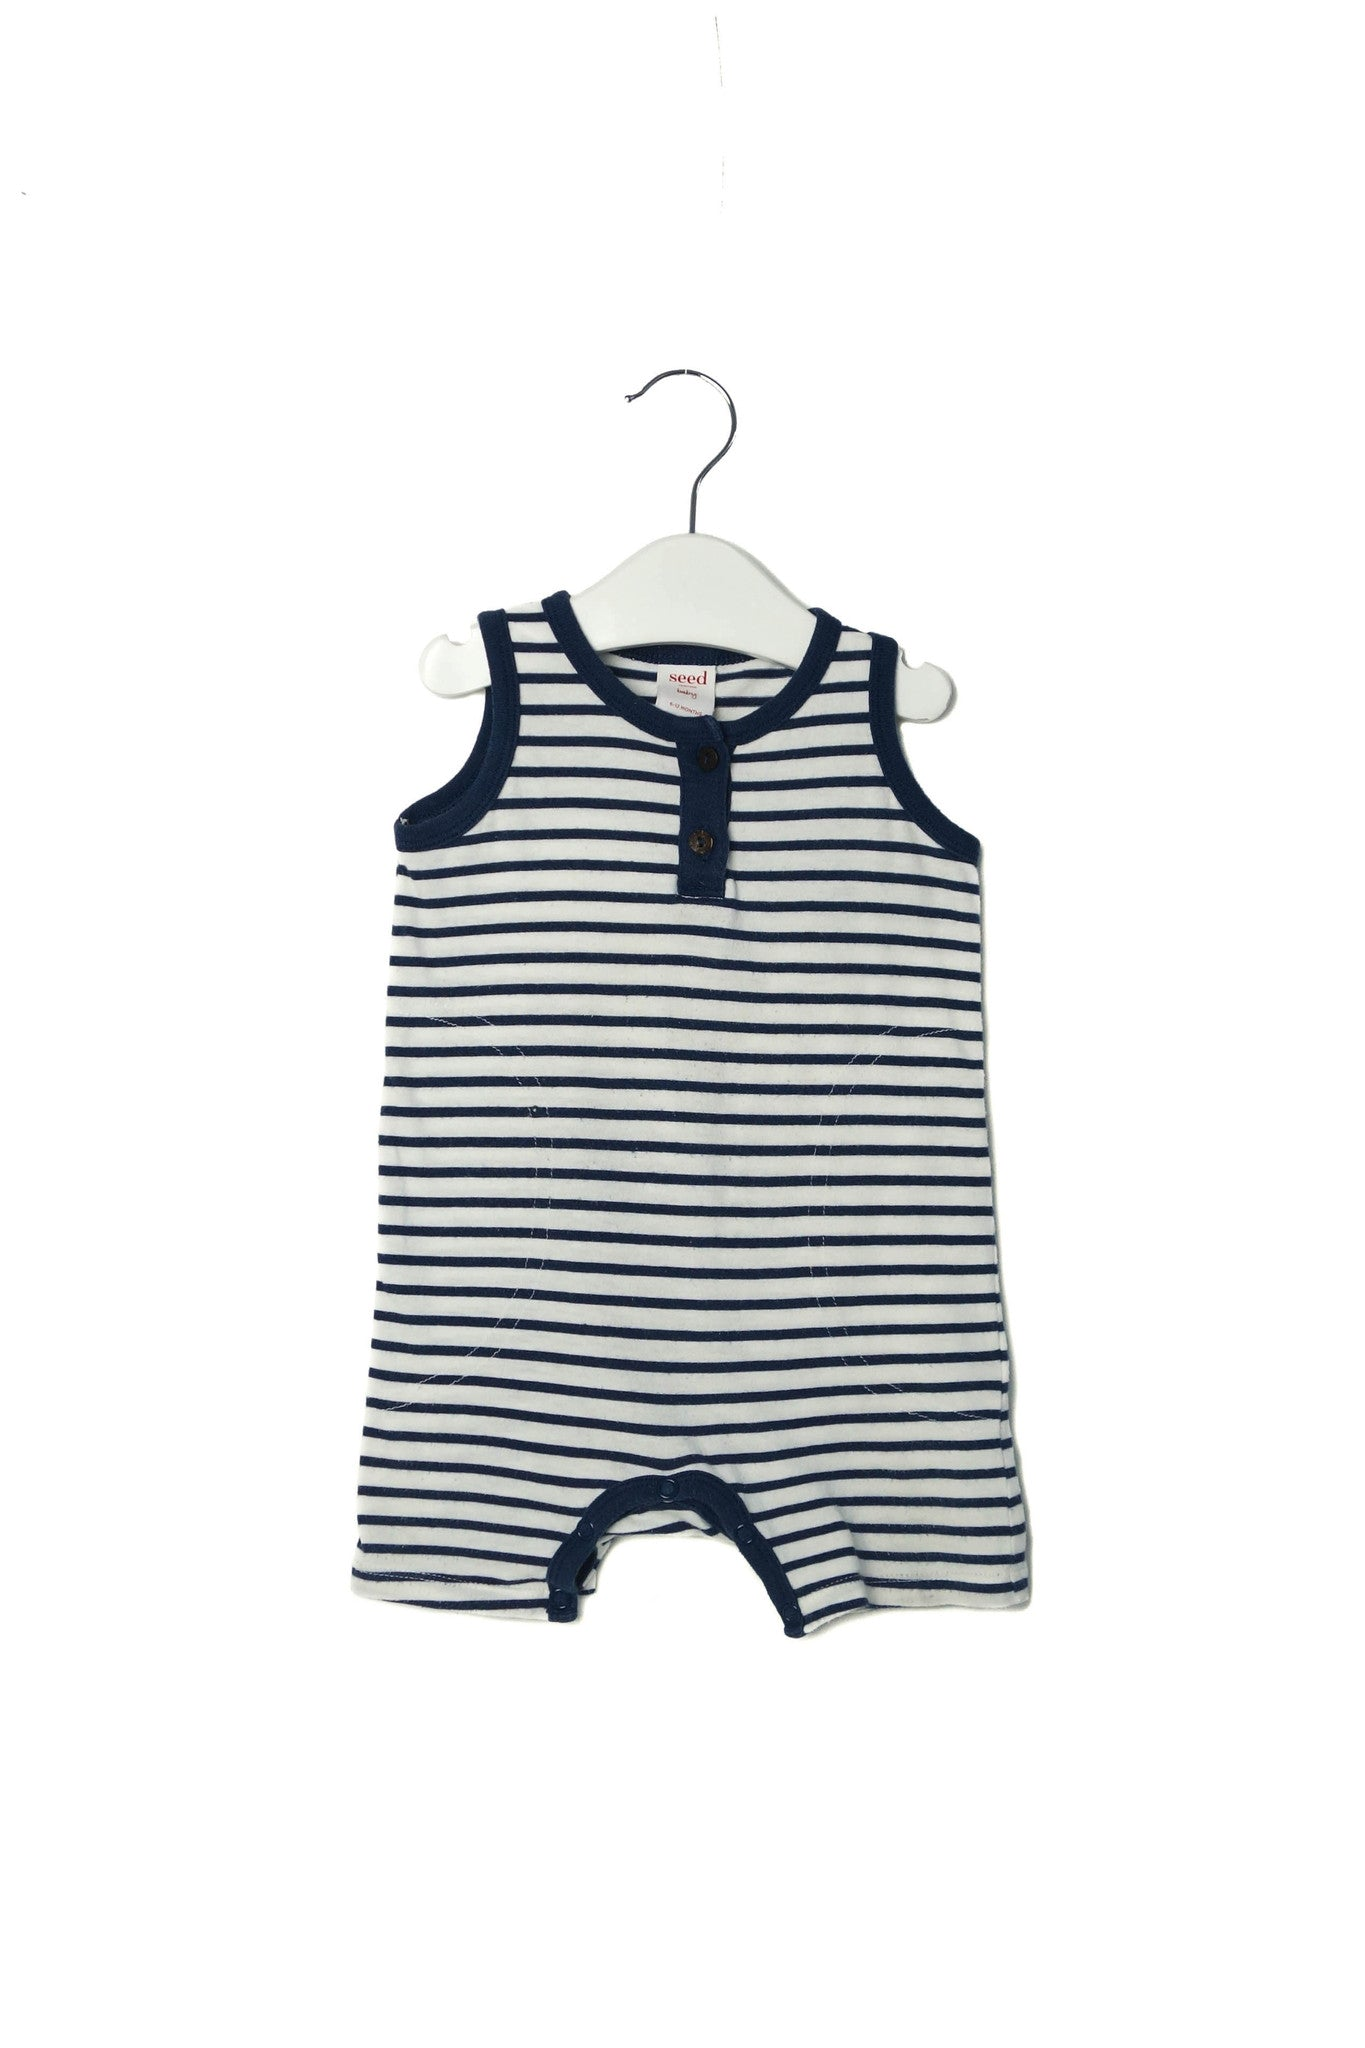 10003210 Seed Baby~Romper 6-12M at Retykle